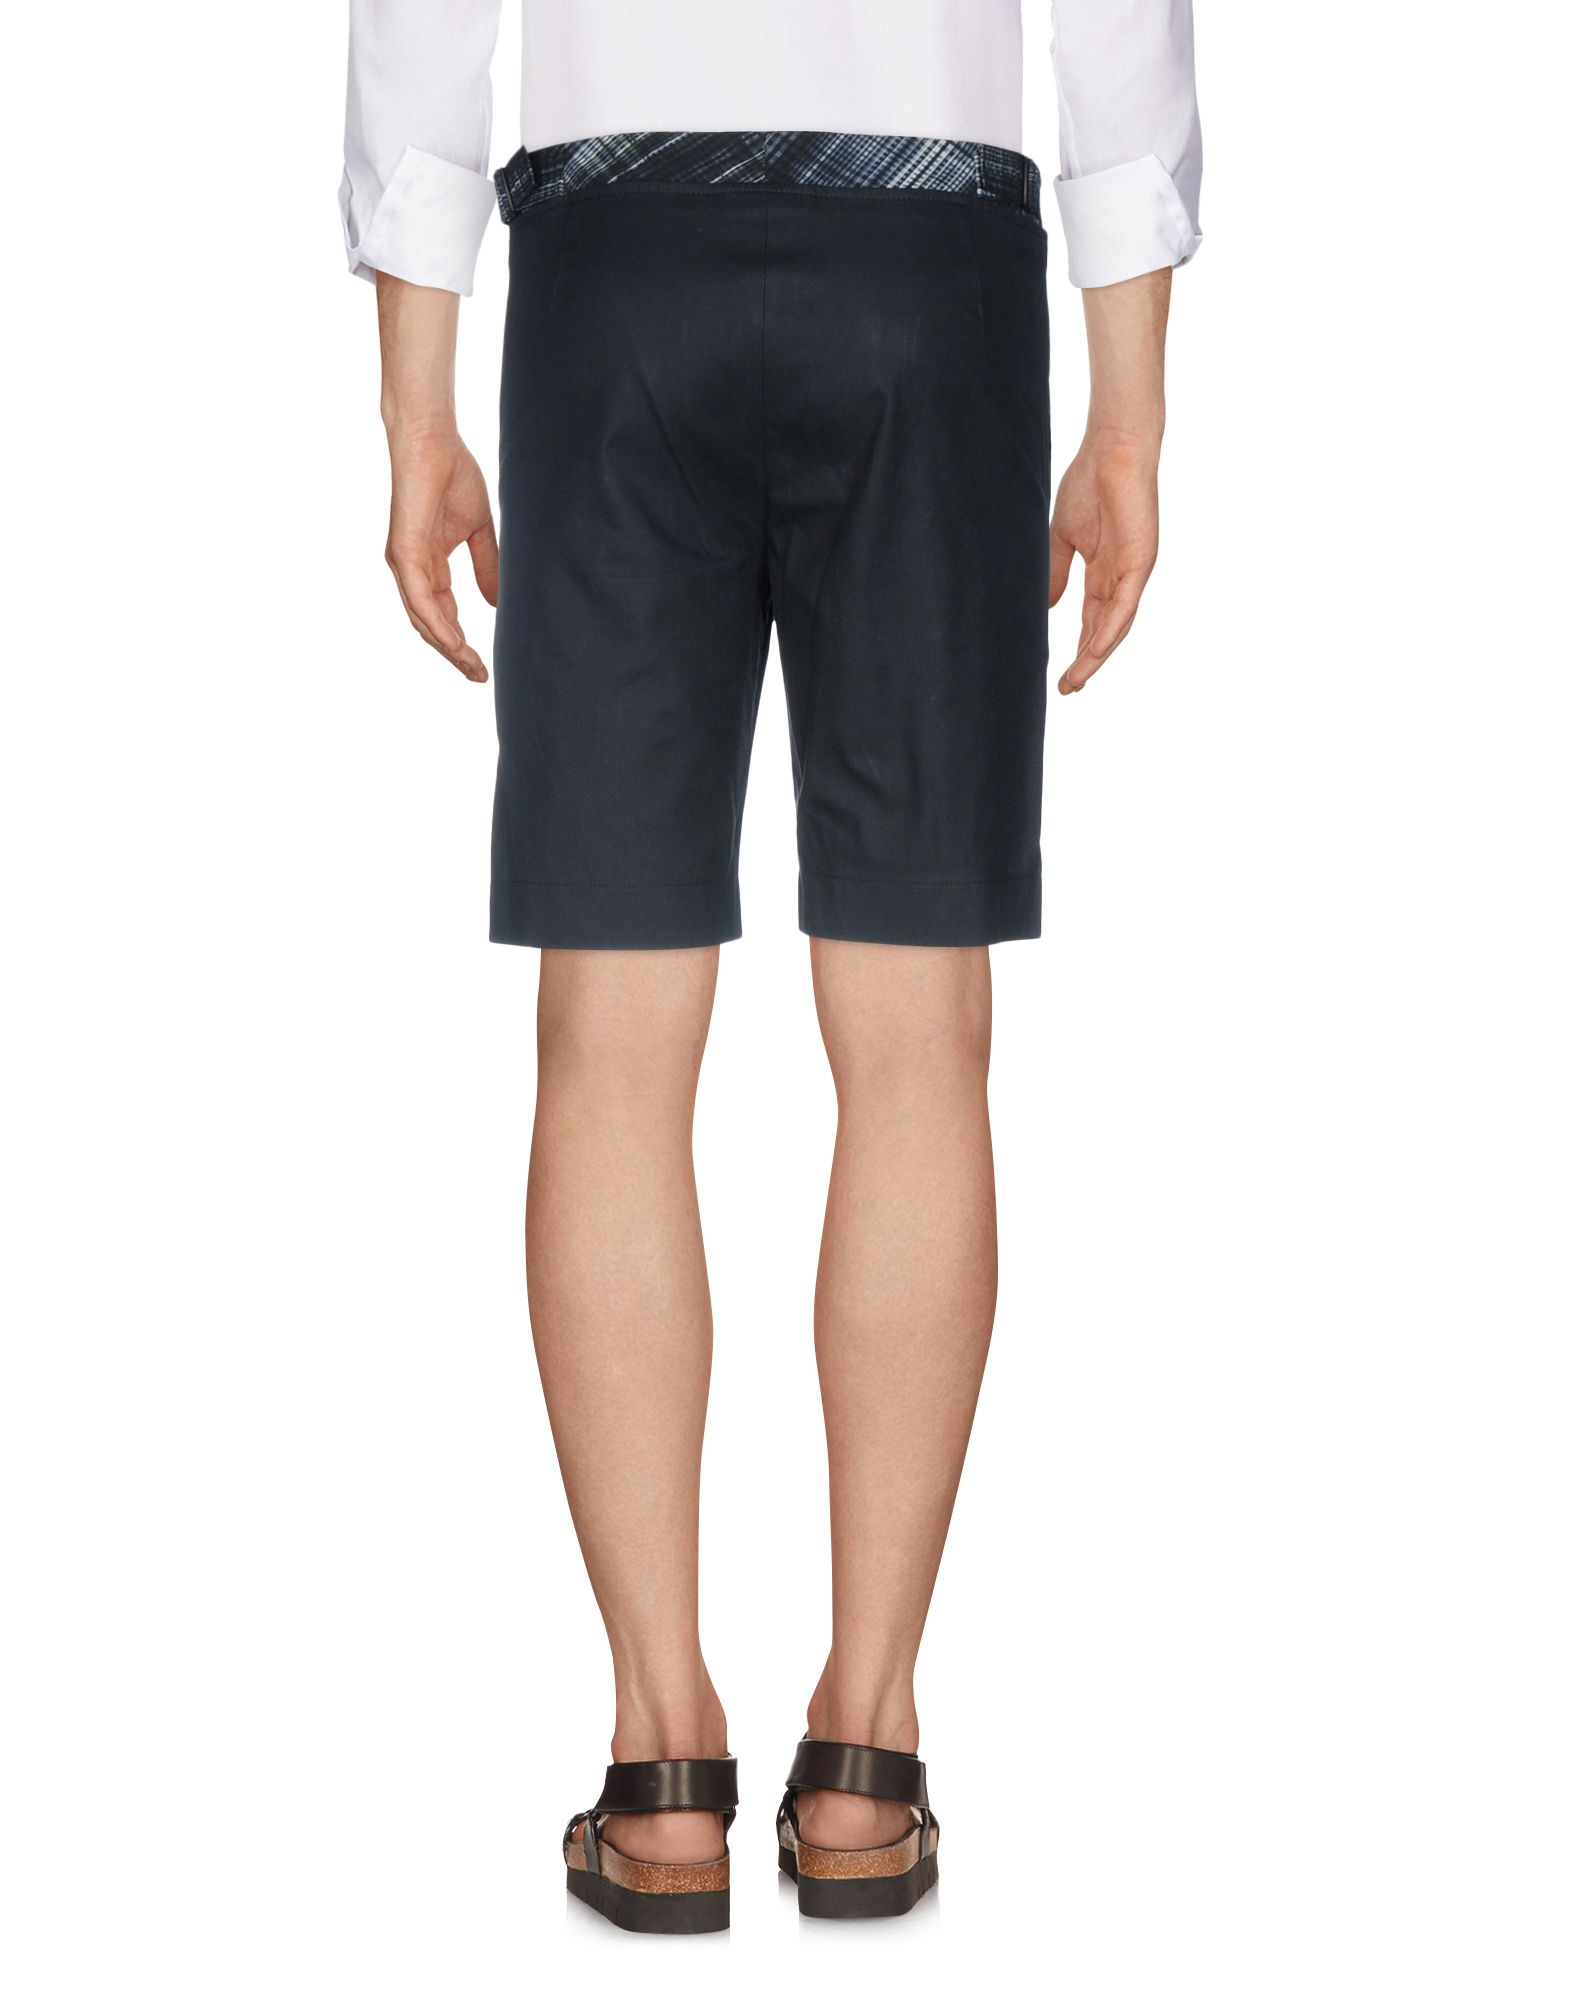 Shorts - & Bermuda Bottega Veneta Uomo - Shorts 13161050CX 3ec403